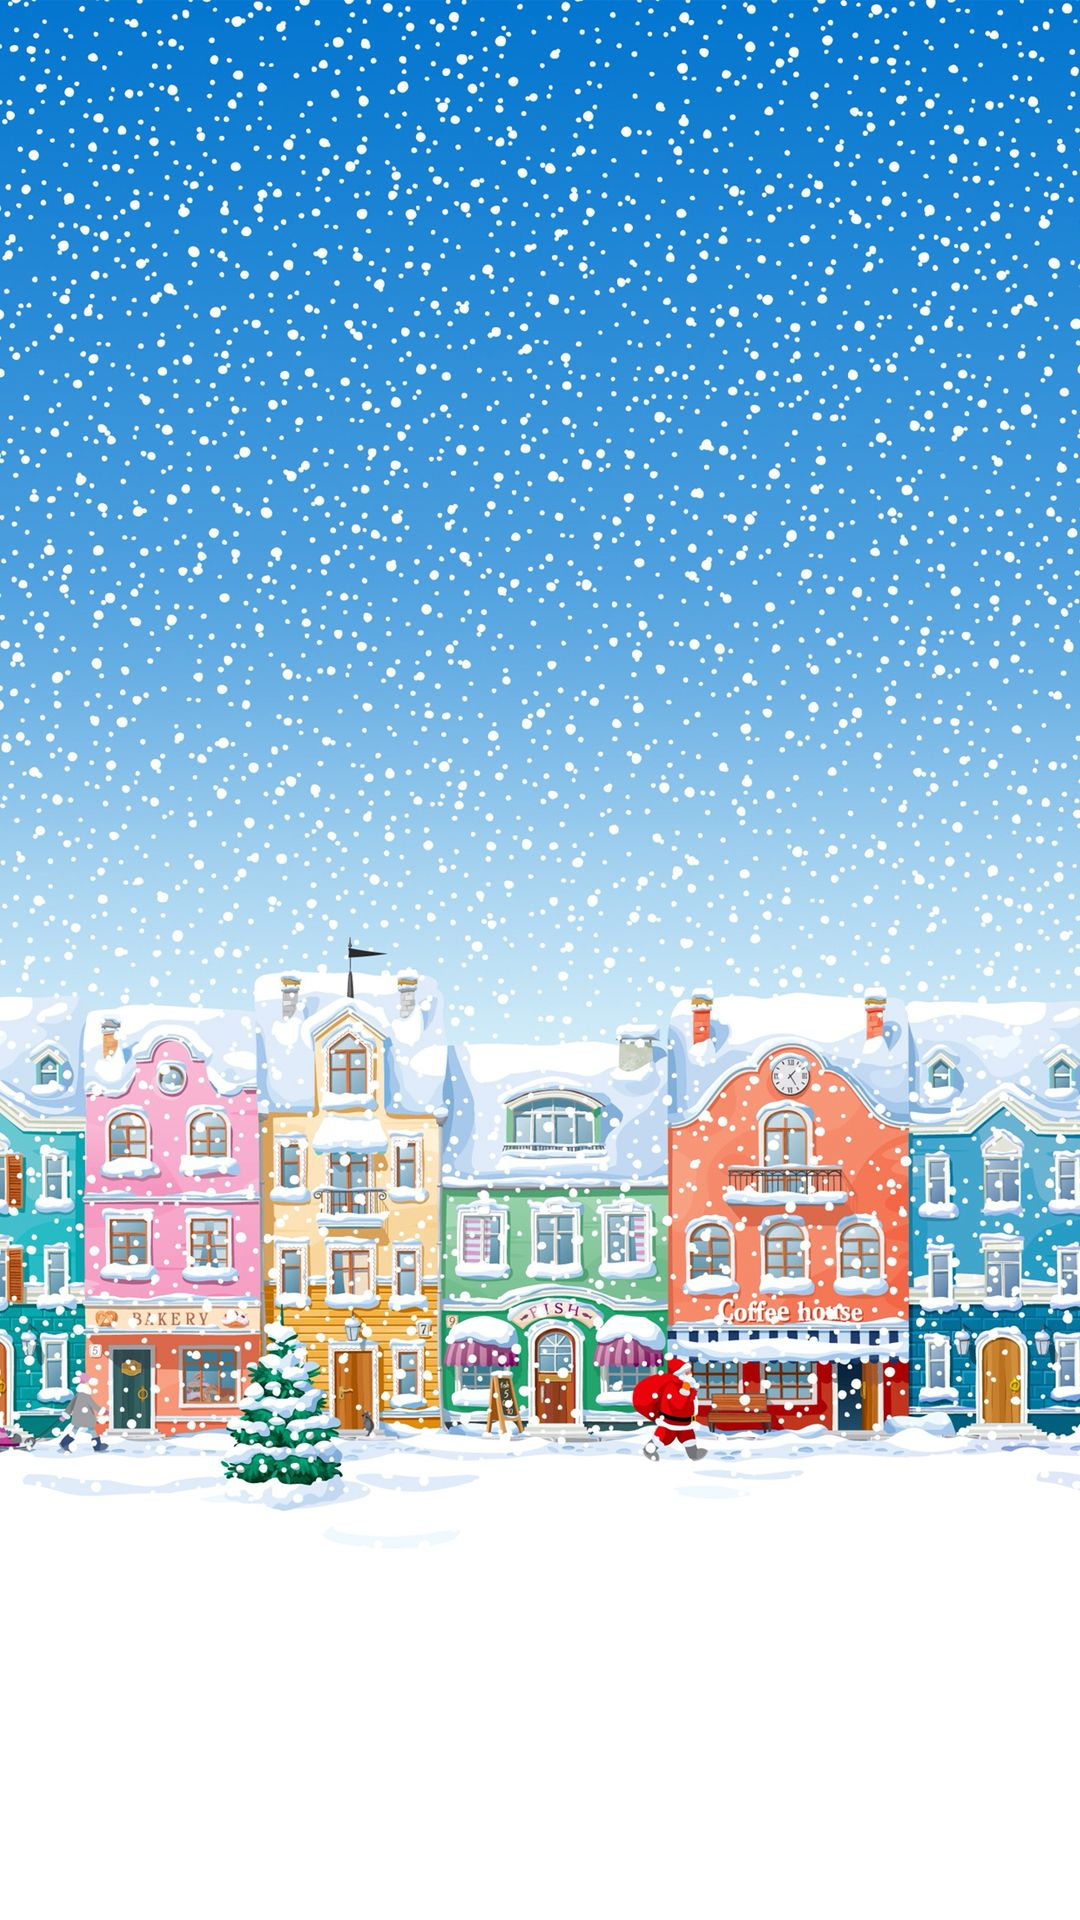 Wallpaper xmas iphone 5 - Snowy Town Santa Claus Delivering Christmas Presents Iphone 6 Wallpaper